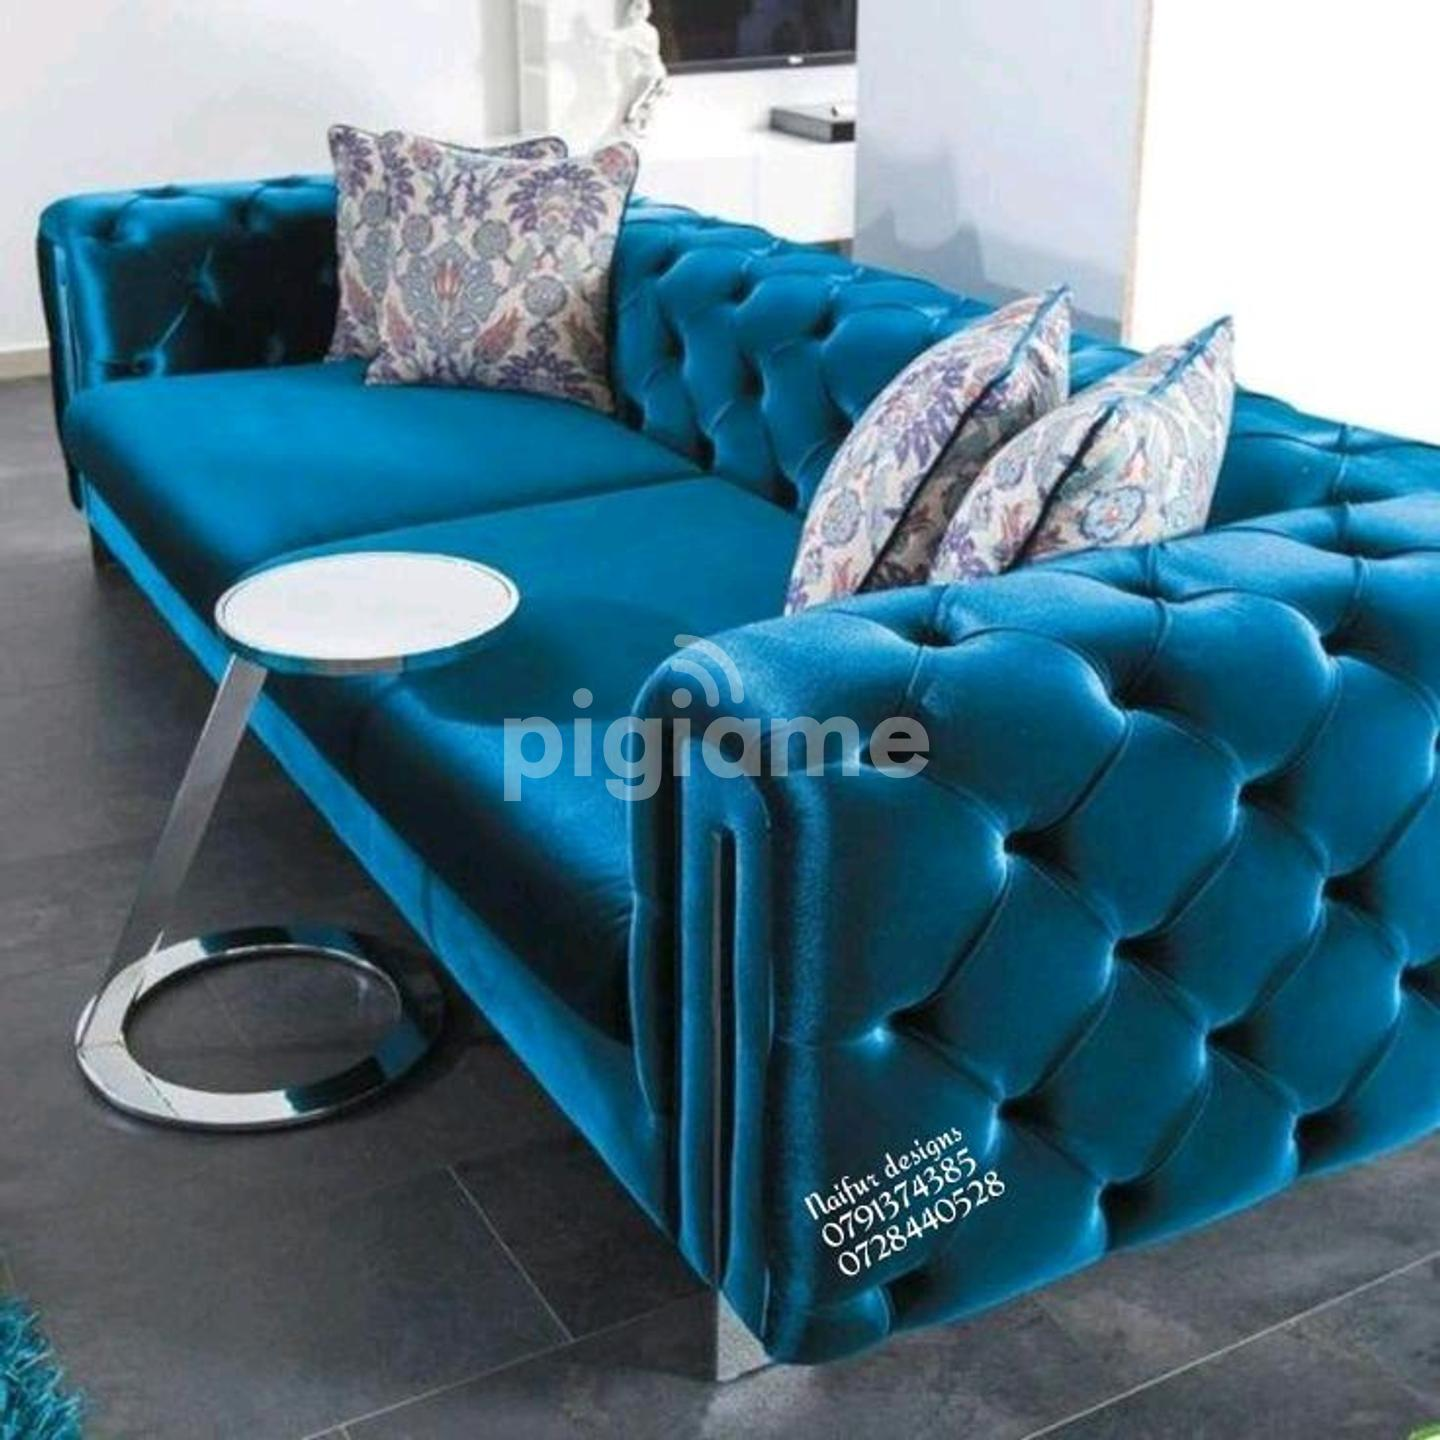 Three Seater Blue Chesterfield Sofa For Sale In Nairobi Kenya Latest Chesterfield Sofas Set Designs In Utawala Pigiame